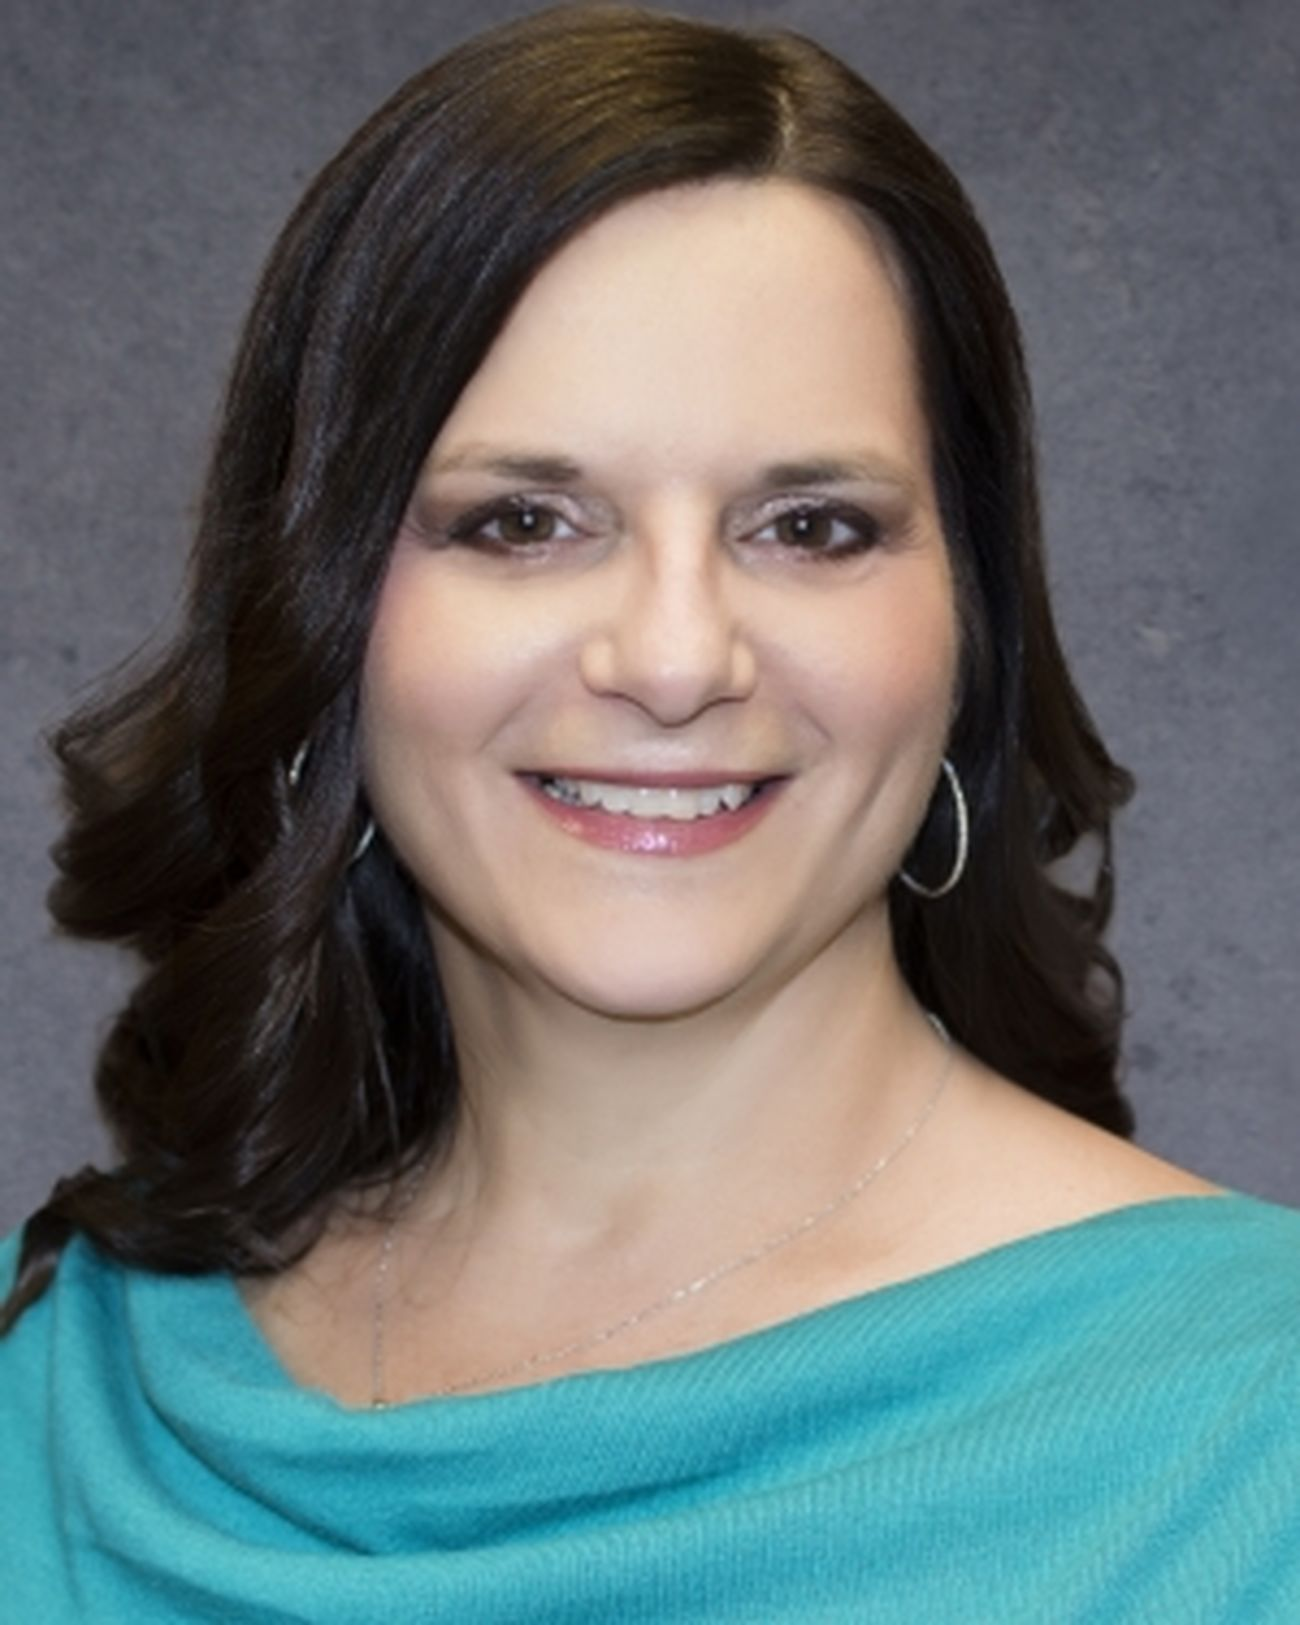 Dr. Cynthia R. Stuart. At Diamond Physicians, our Dallas doctors are board certified and offer affordable healthcare attention. Sign up today! Doctor  Doctors Dr. Cynthia R. Stuart Dr. Cynthia Stuart Health Healthcare Healthcare And Medicine Medicine